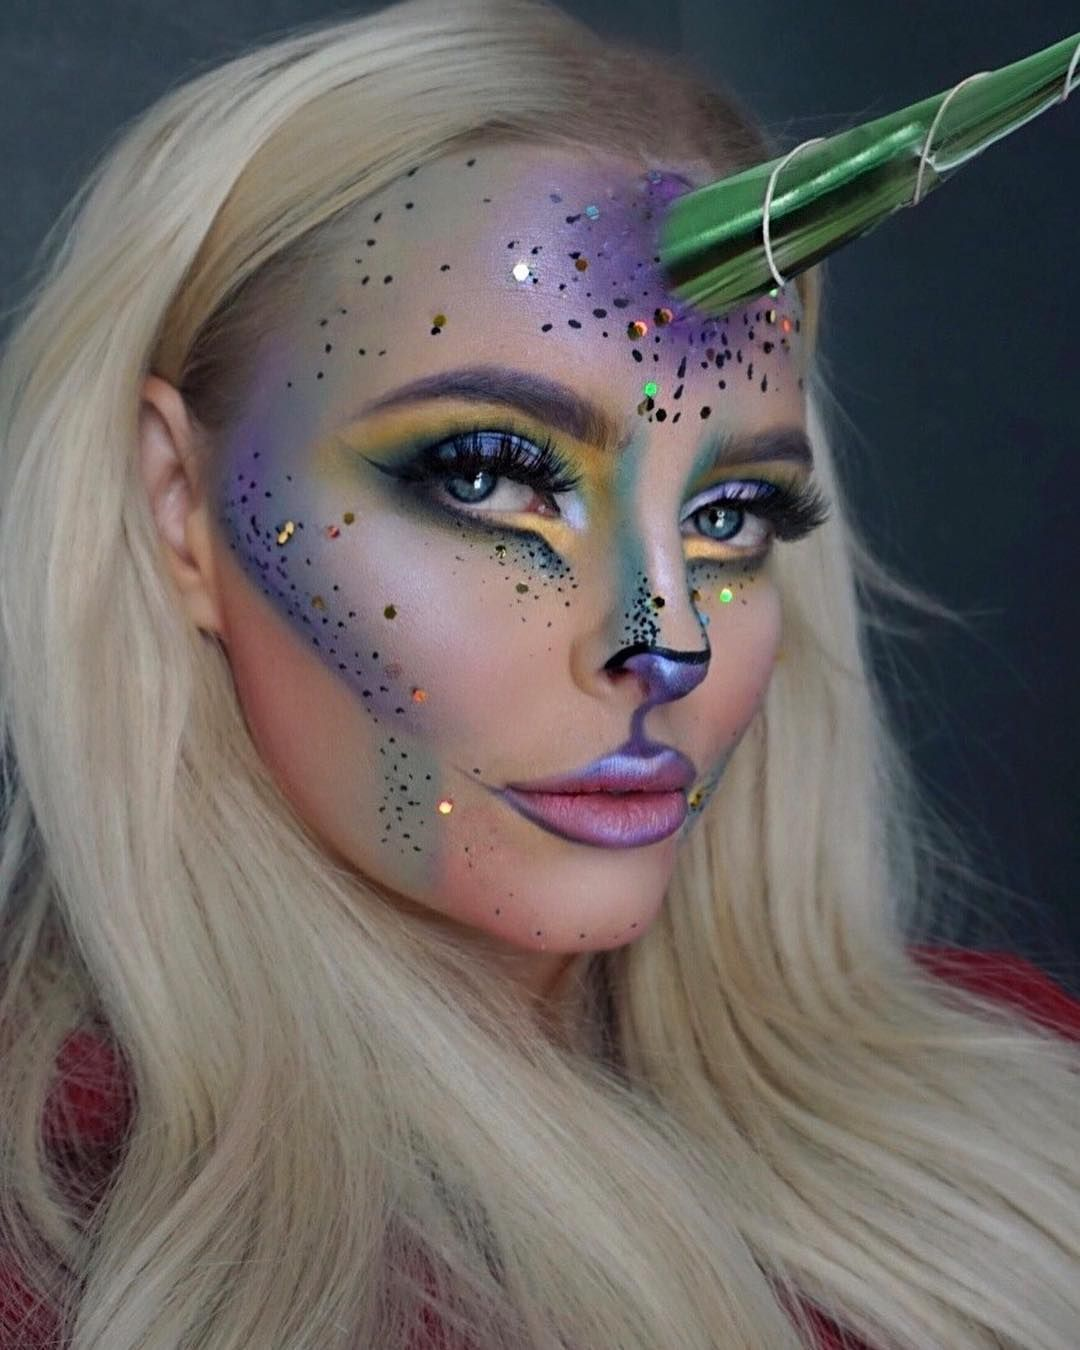 Unicorn makeup is trending this year for Halloween! Our